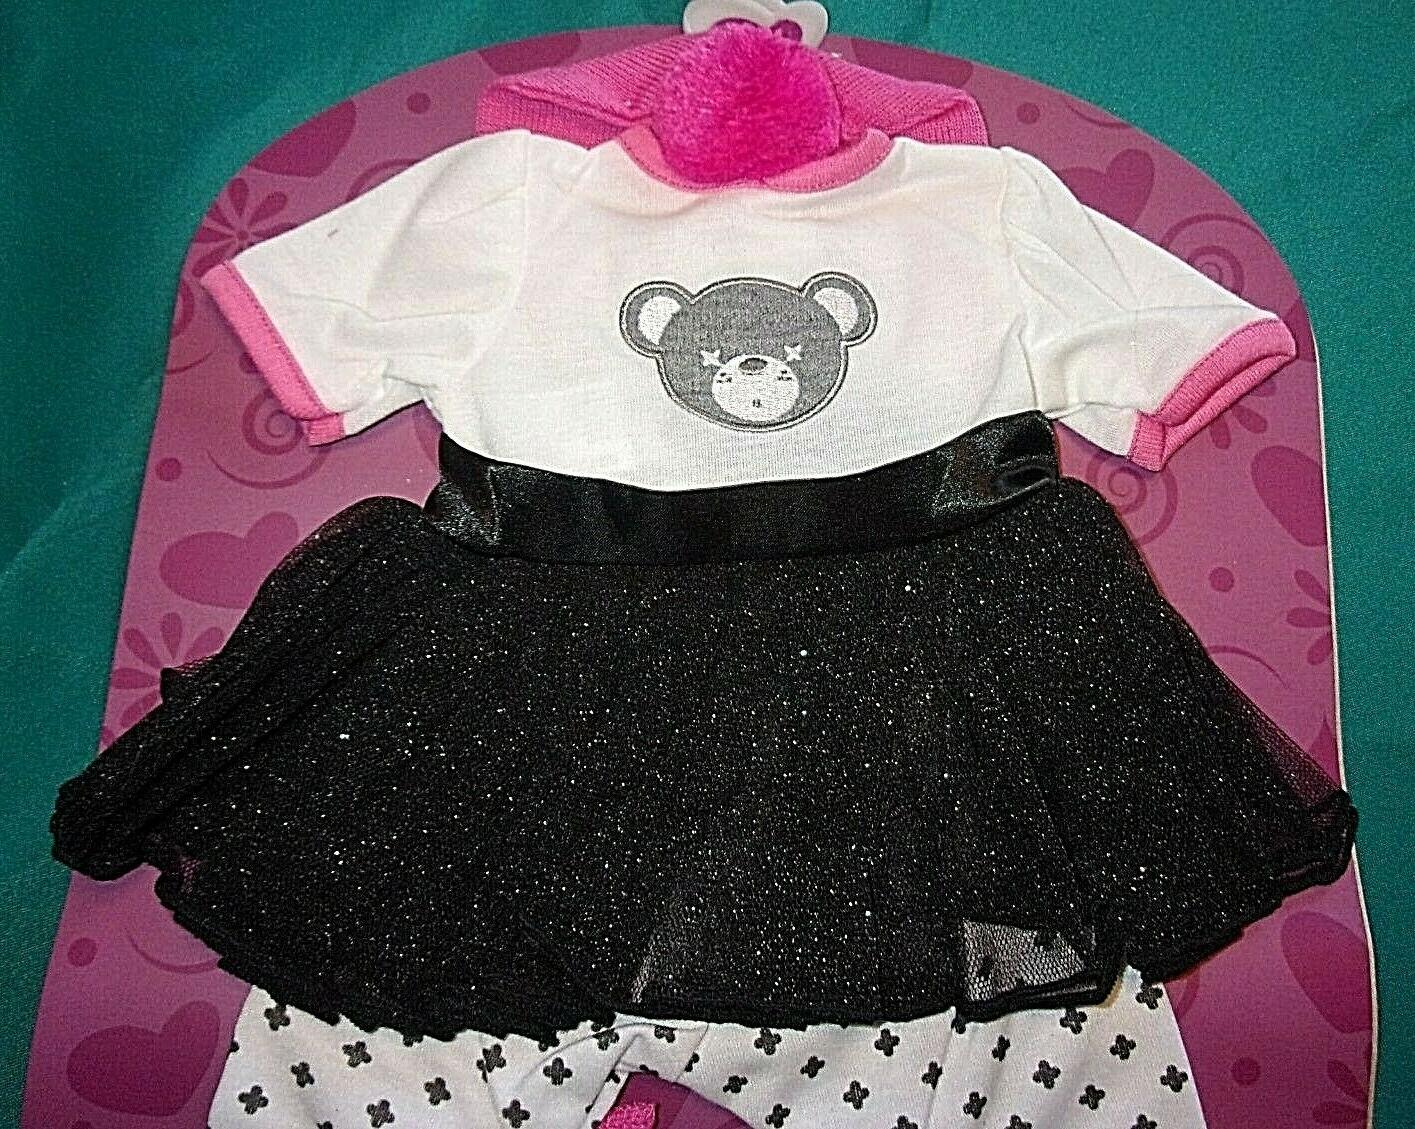 NEW ADORA TODDLER TIME OUTFIT W/SHOES